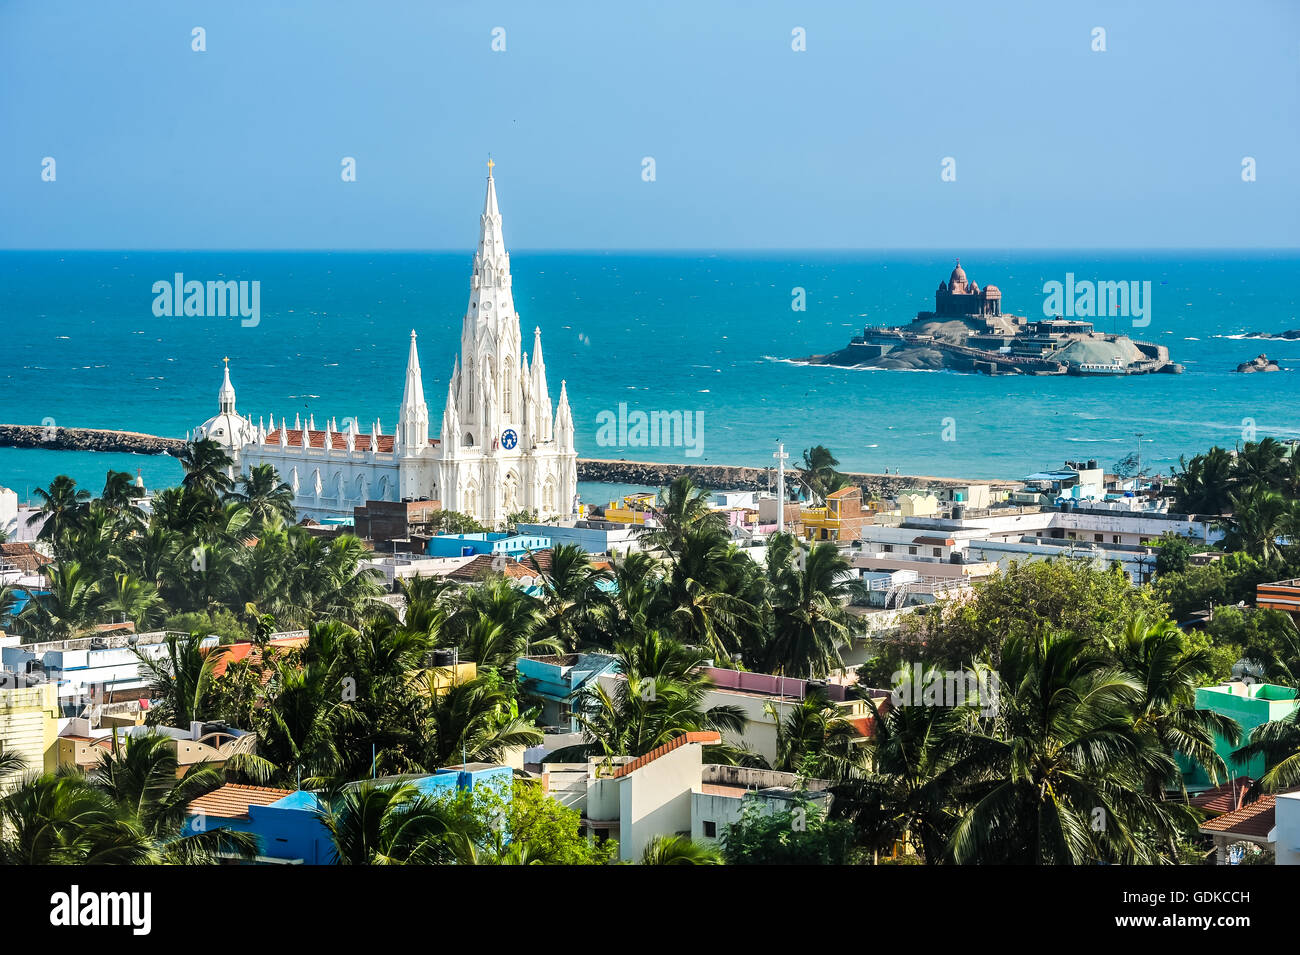 Pilgrimage town Kanyakumari with pilgrimage church Our Lady of Ransom, South India, India - Stock Image